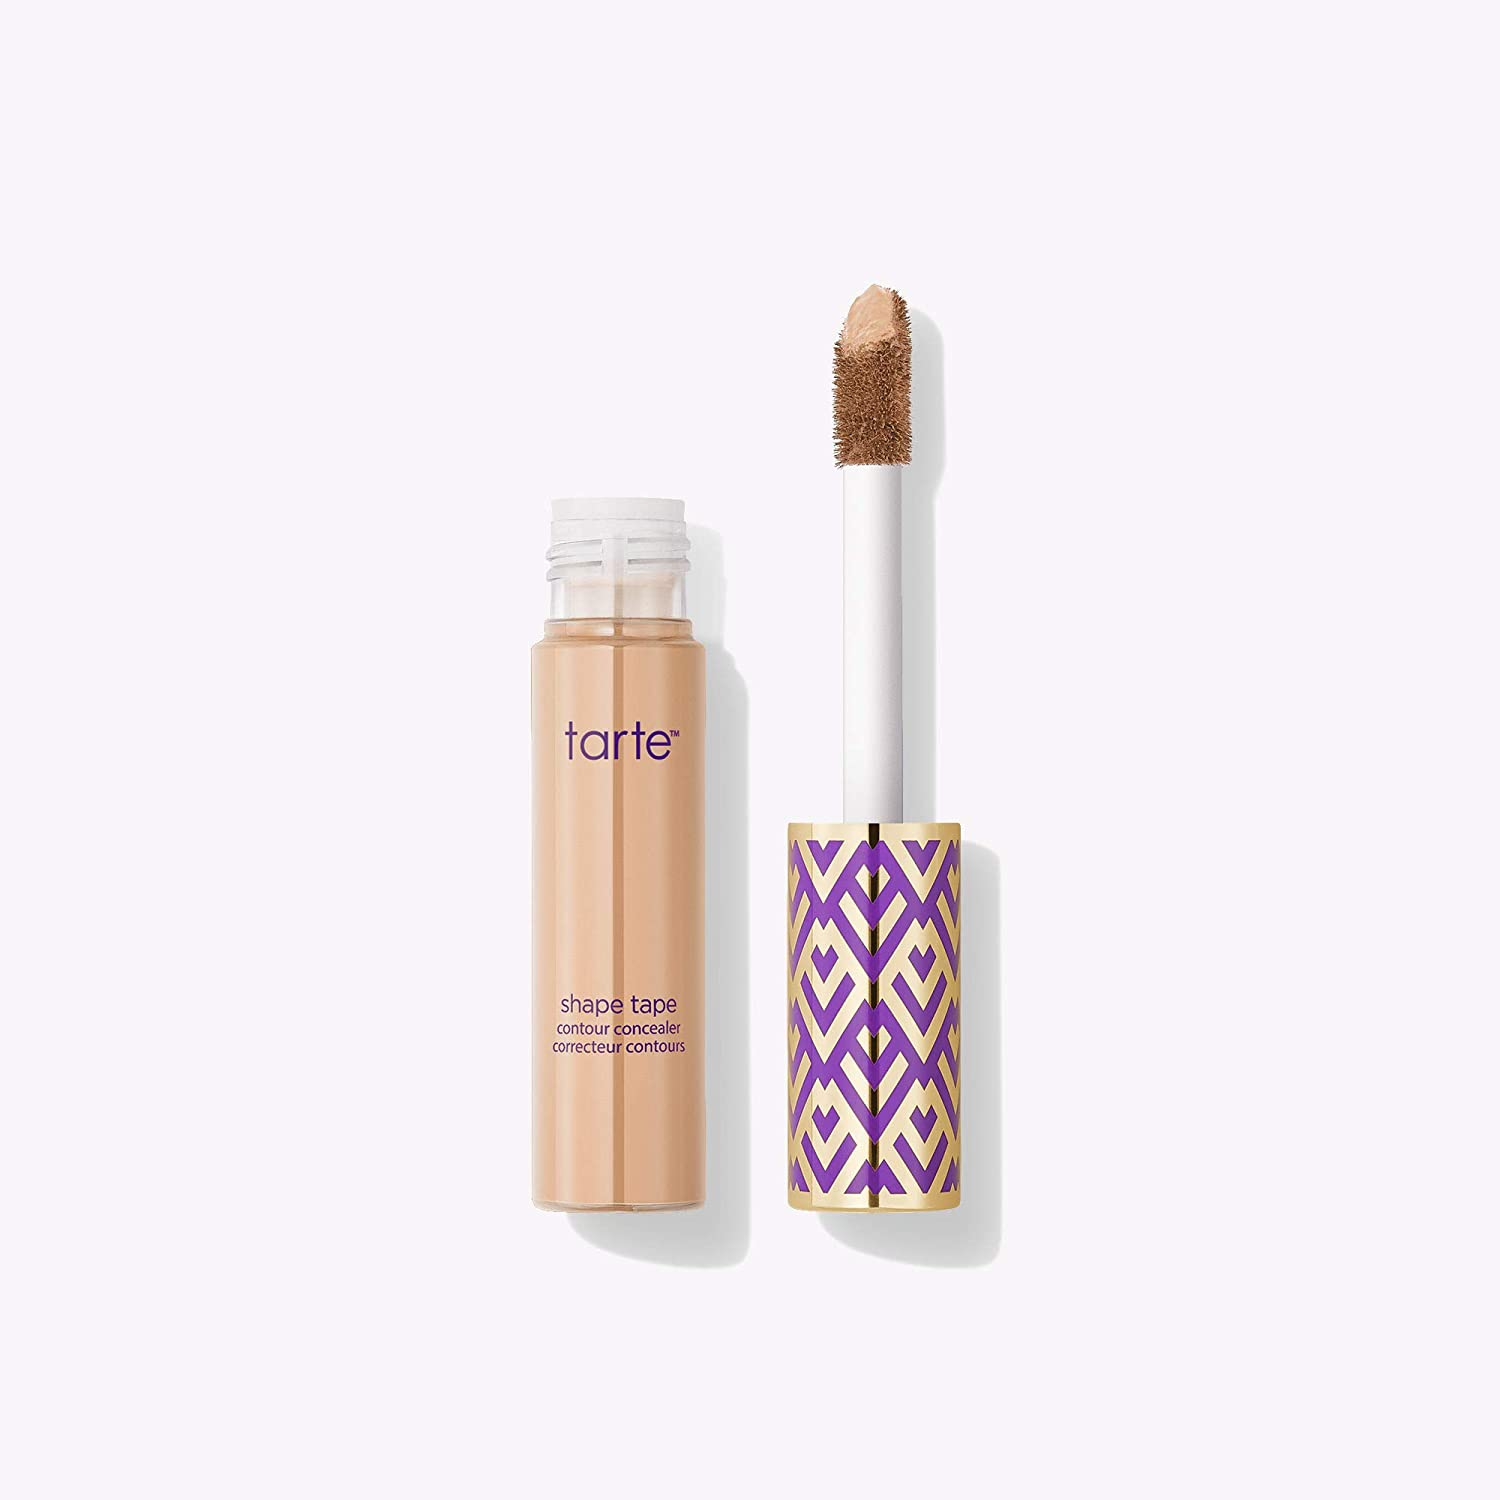 The Tarte Shape Tape Contour Concealer travel product recommended by Adina Mahalli on Pretty Progressive.